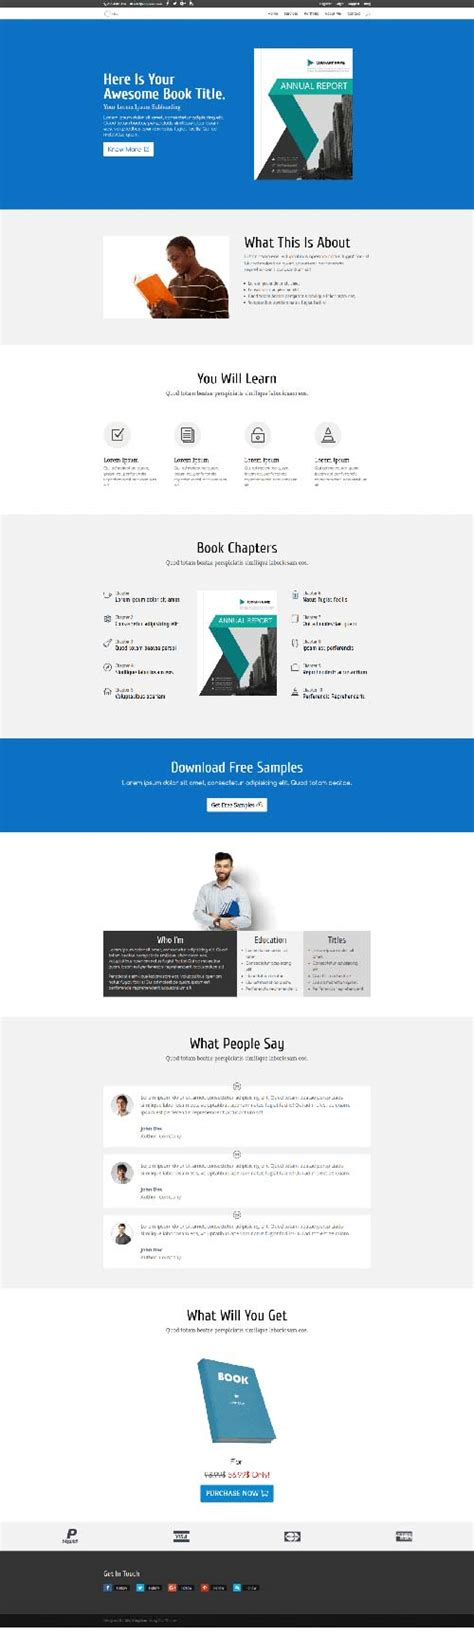 book layout sles book sales 1 page layout divi theme layouts